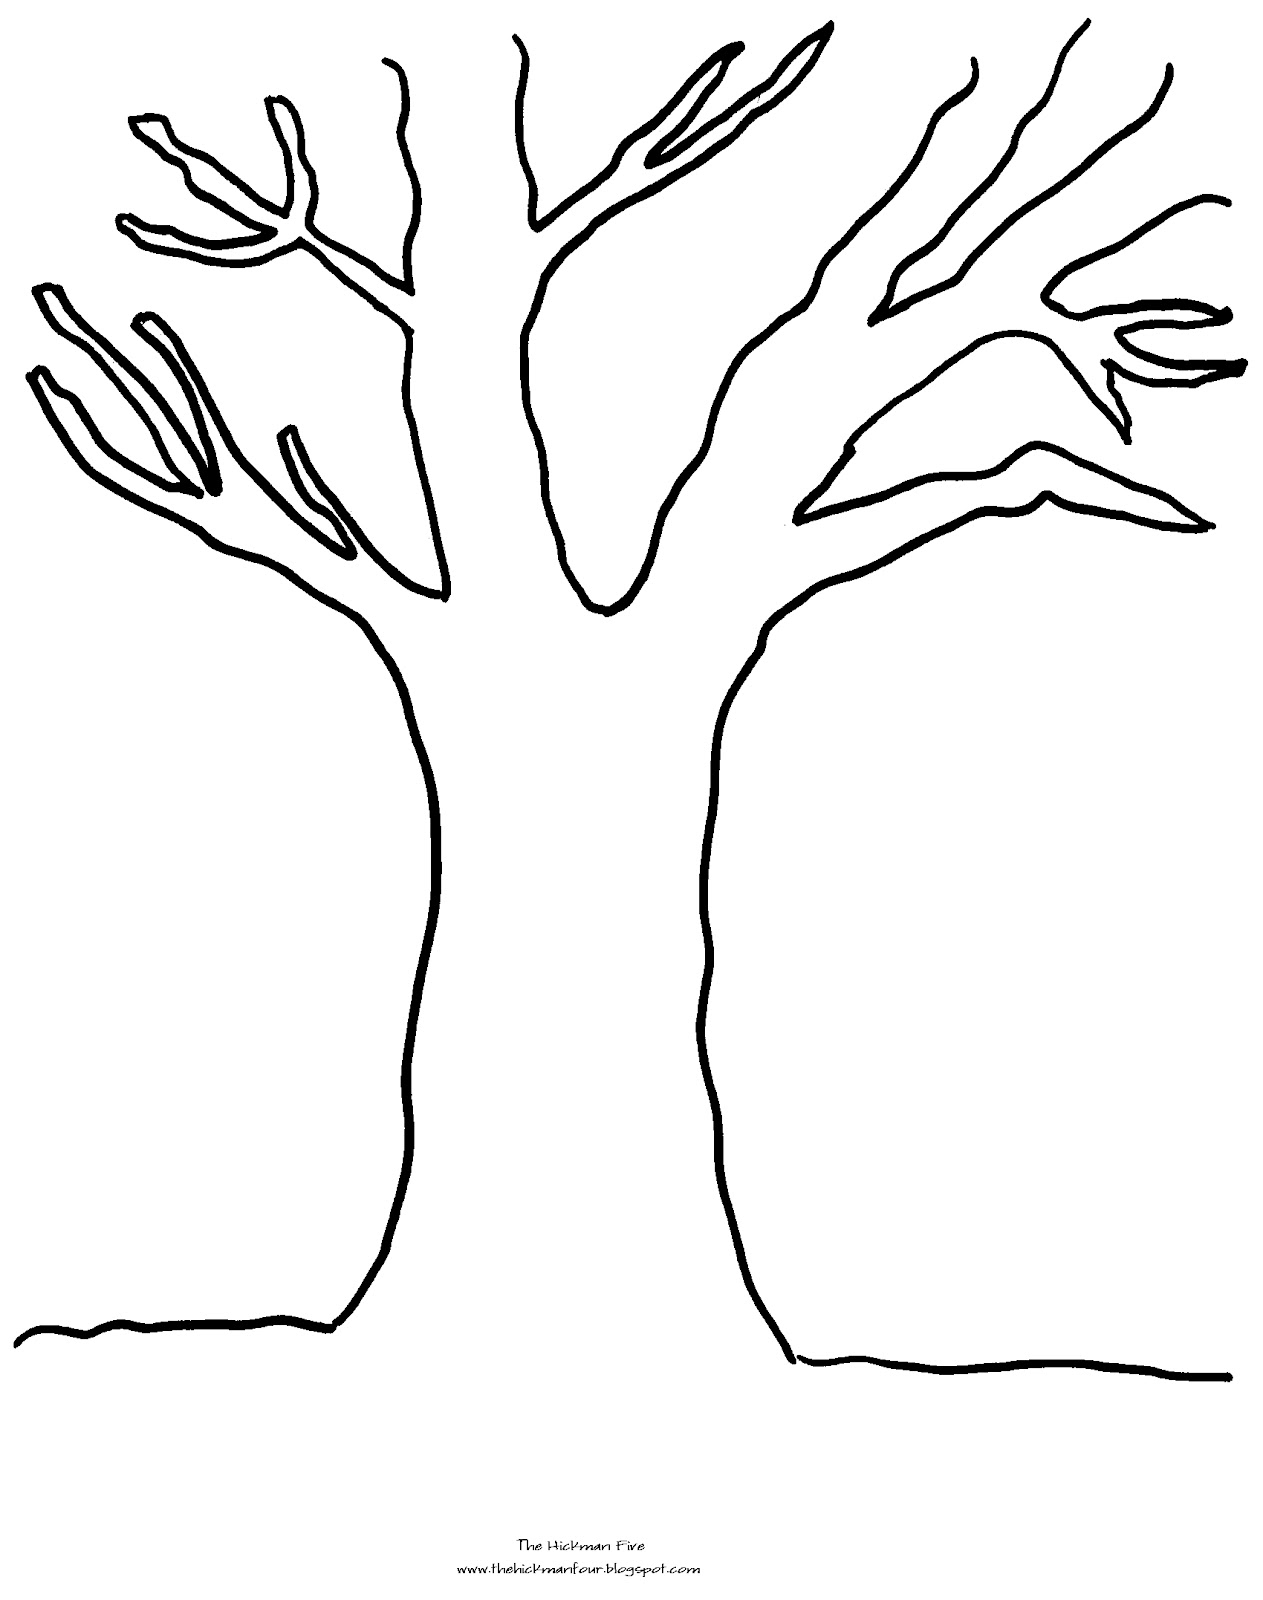 M fall tree coloring page coloring pages for Fall trees coloring pages